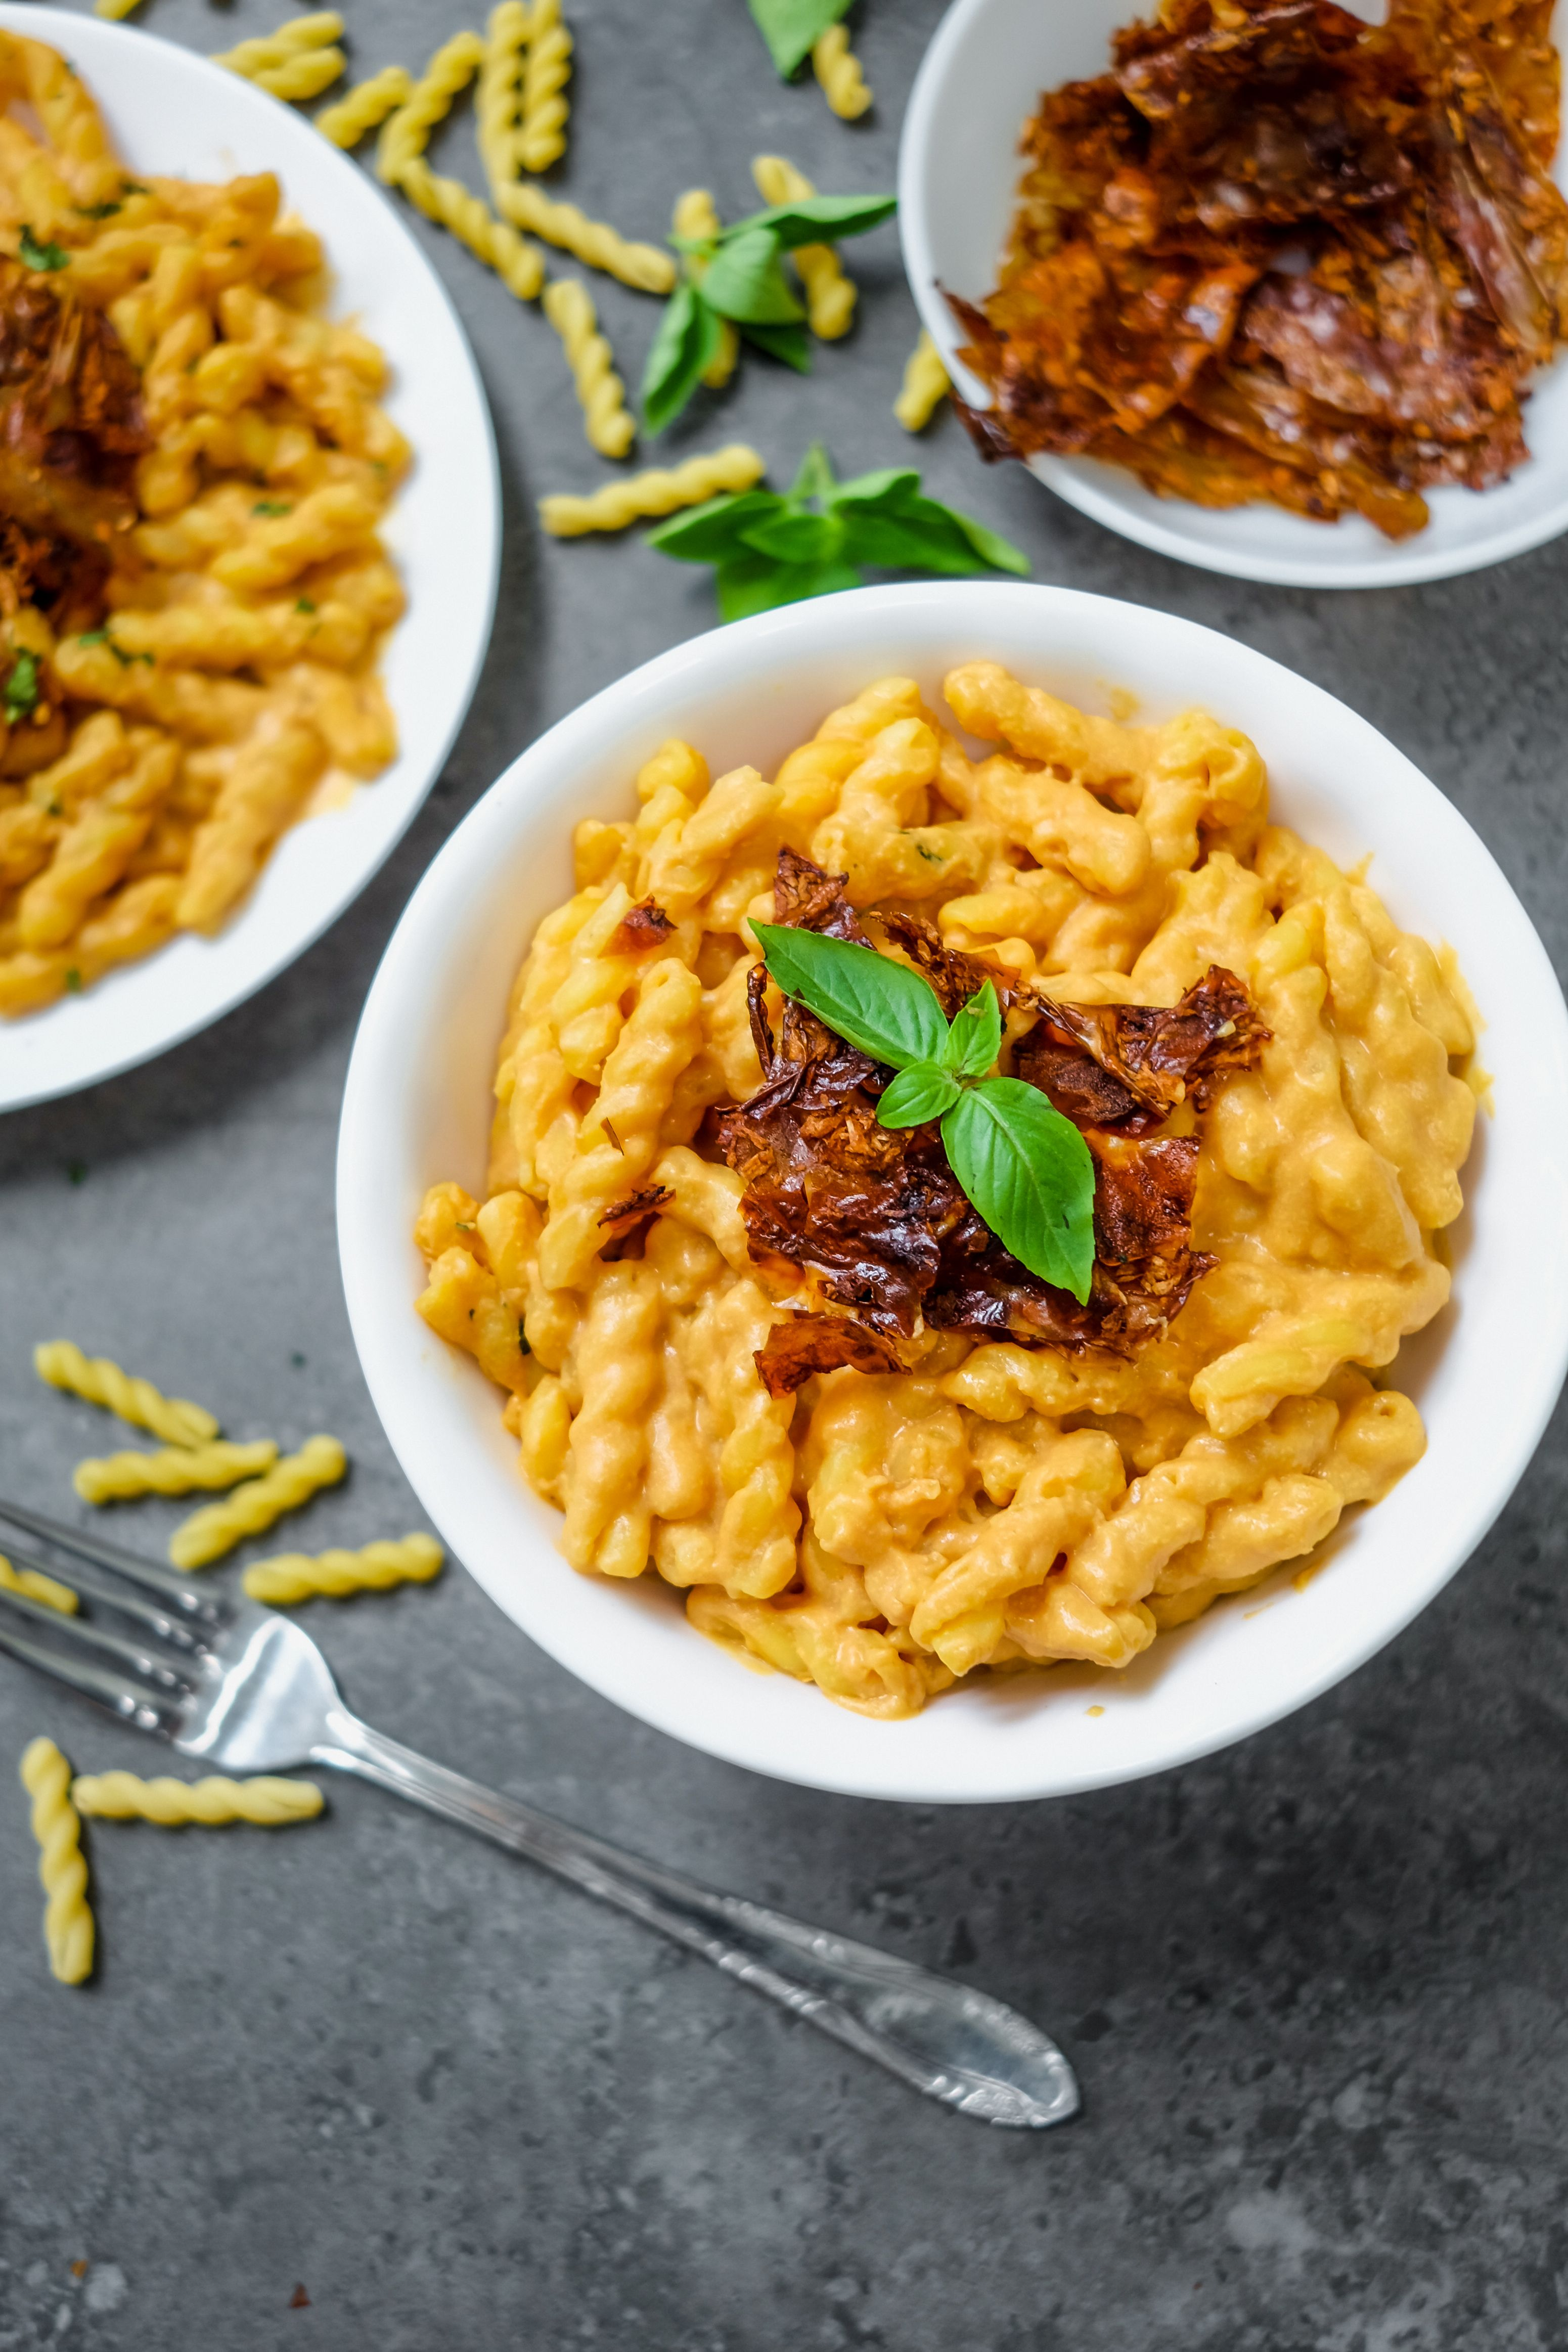 Mac No Cheese And Vegan Bacon Healthy Dishes How To Cook Pasta